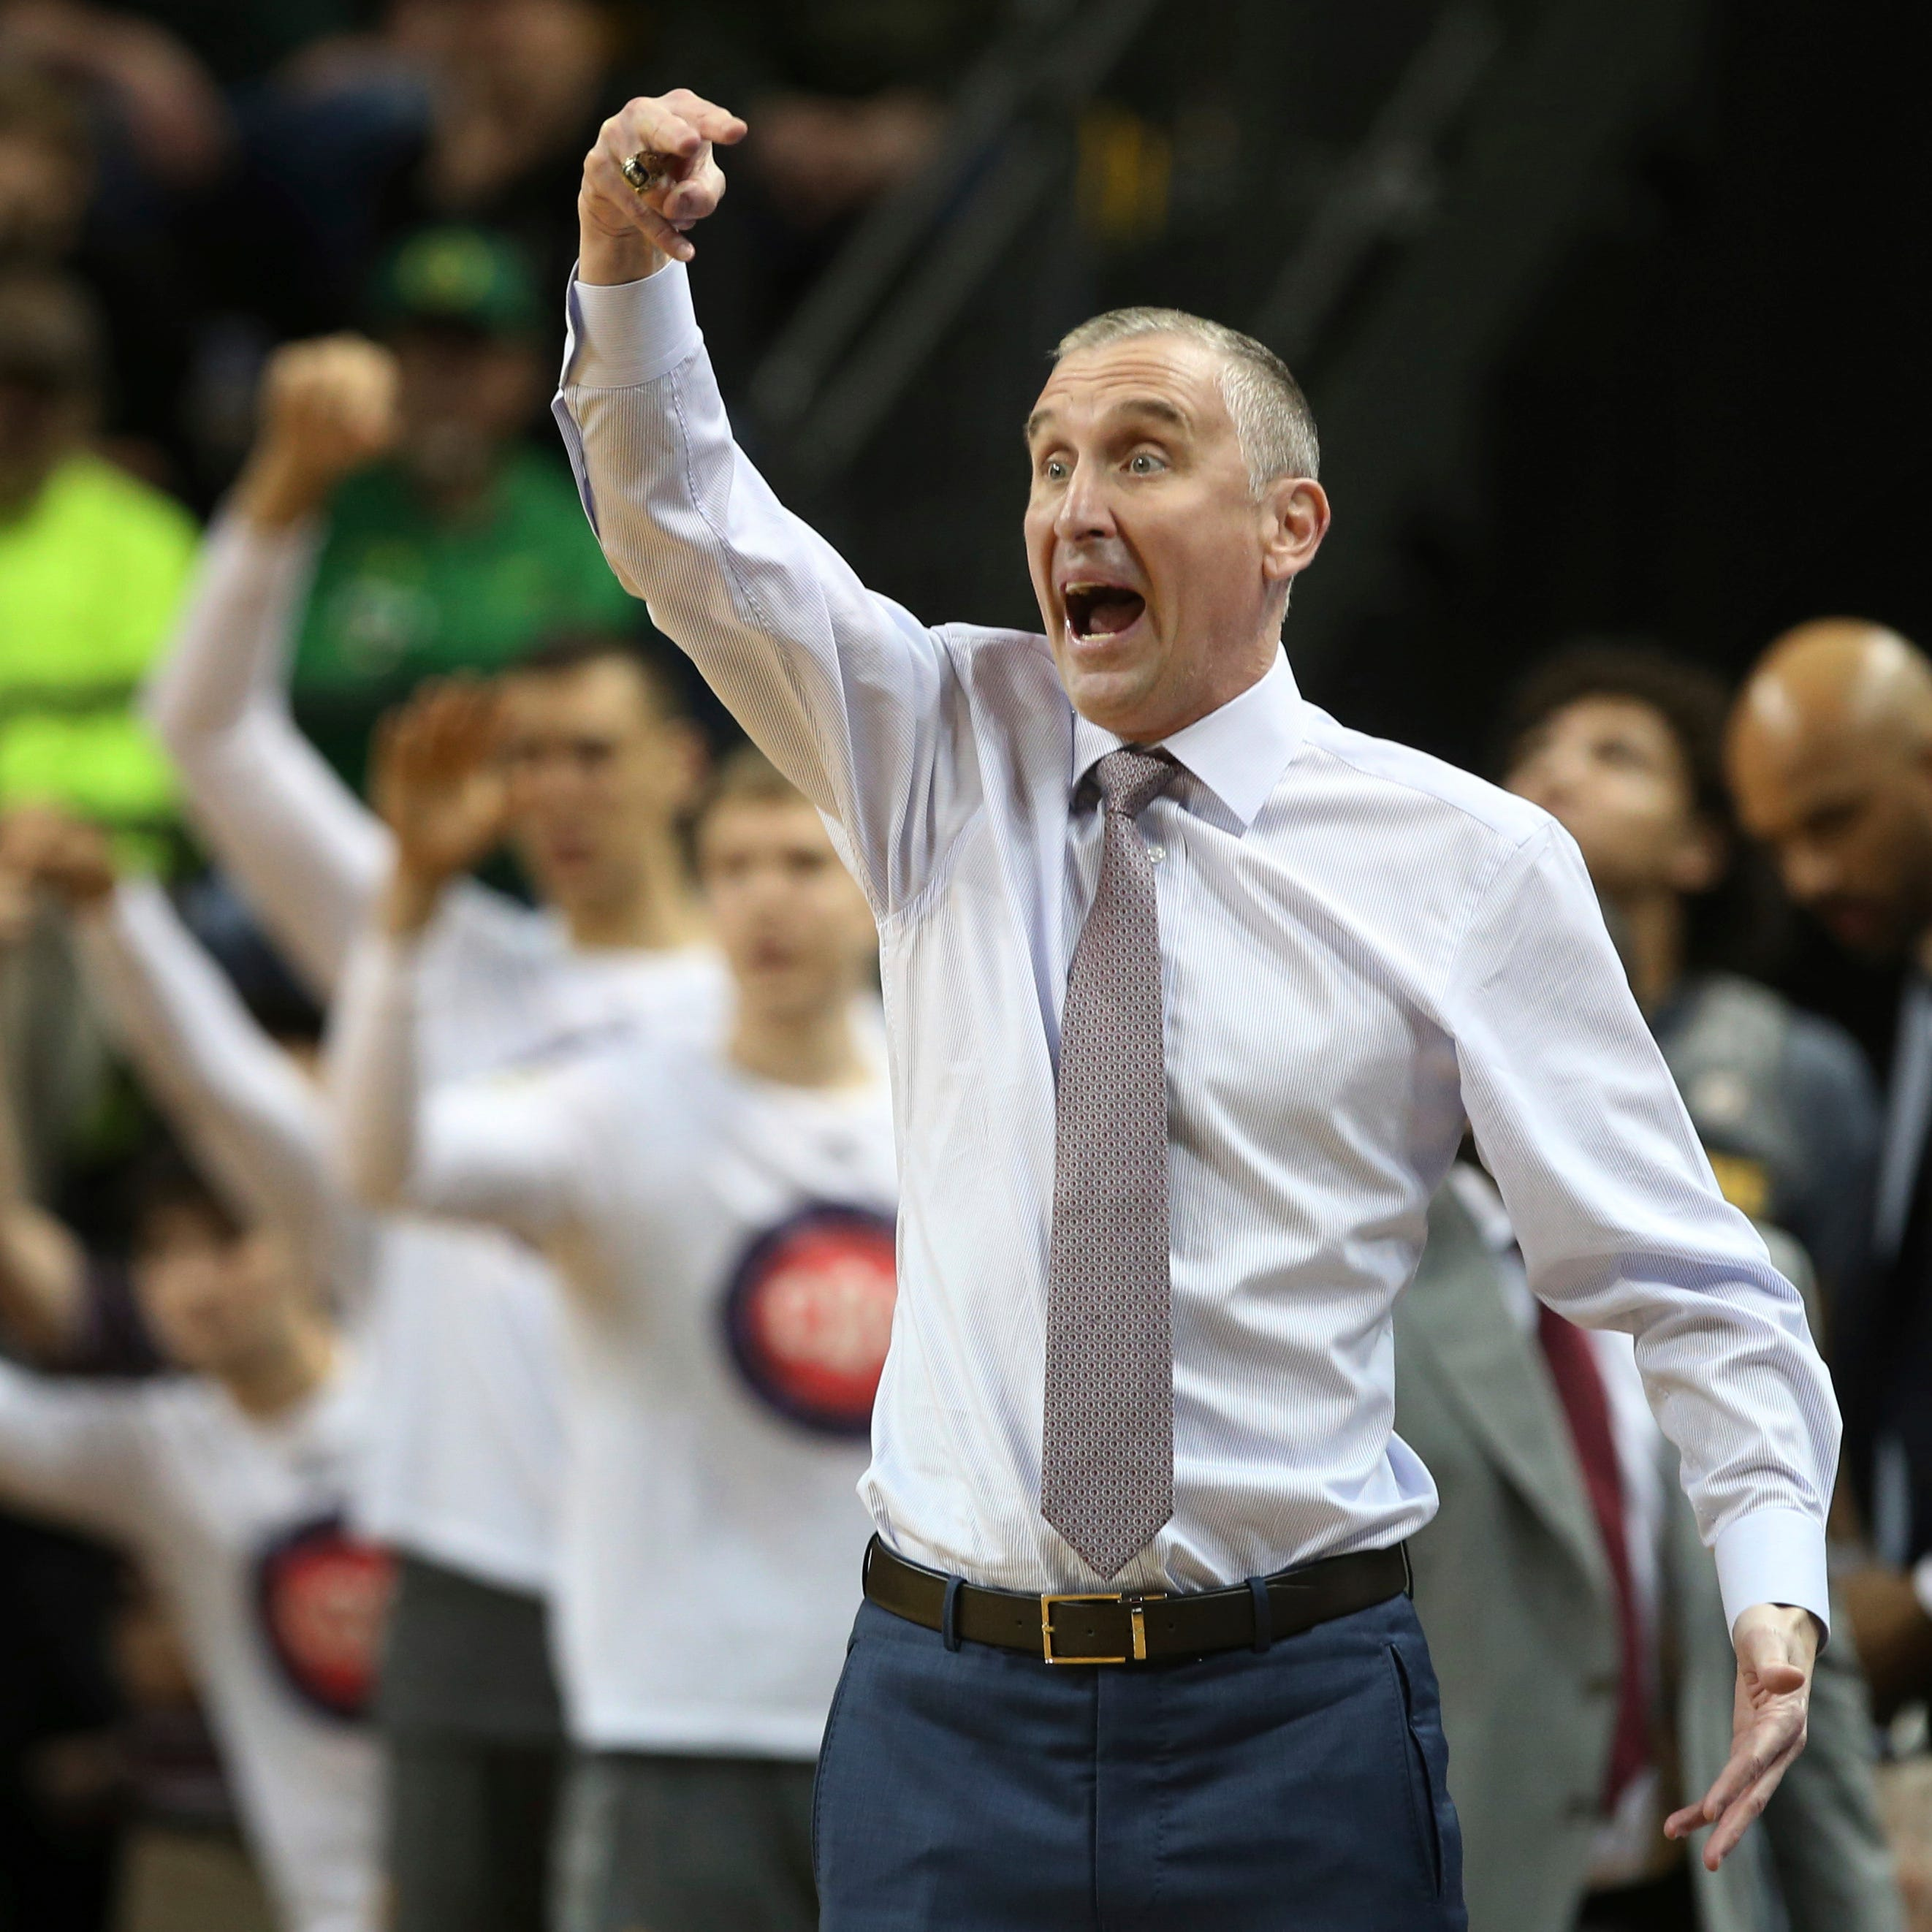 St. John's basketball coach: Bobby Hurley no longer favorite to replace Chris Mullin?